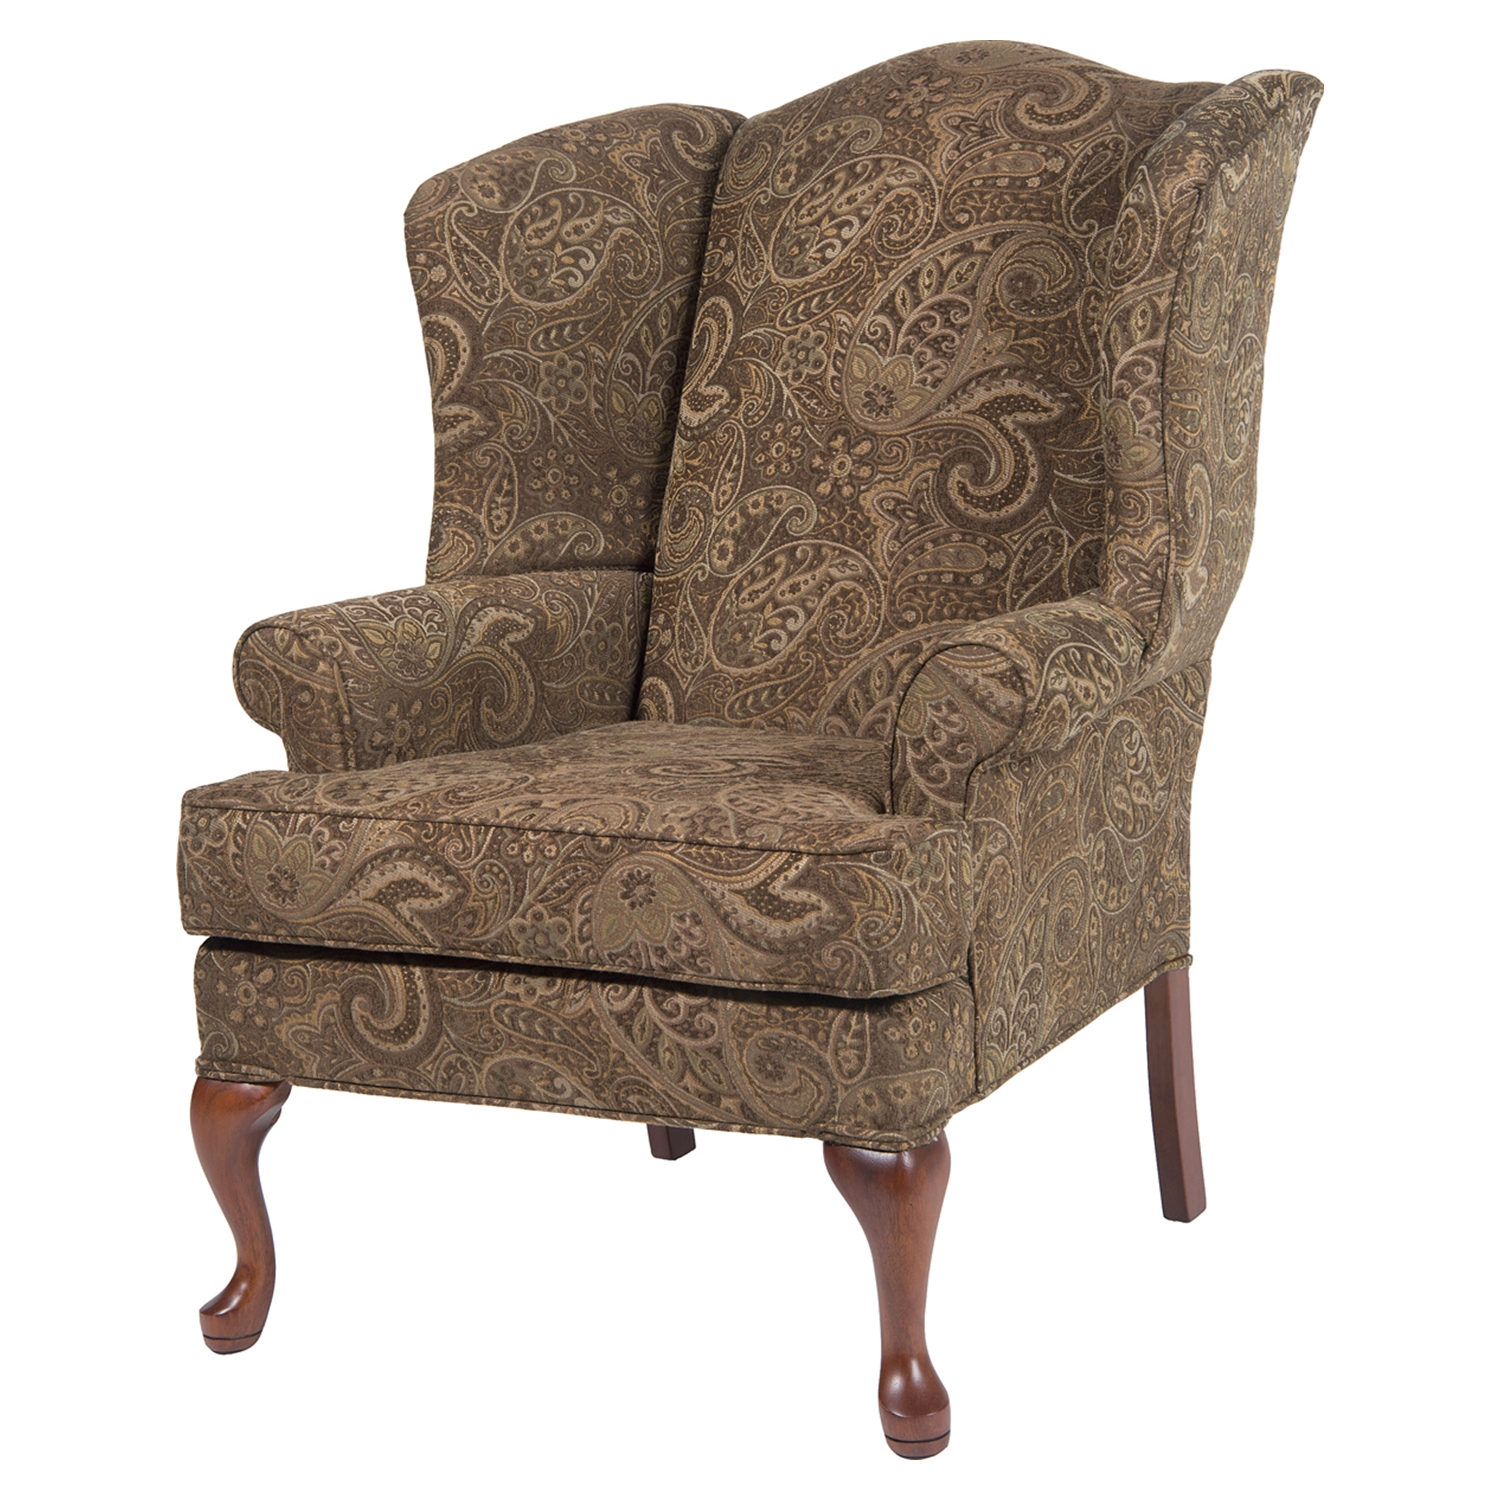 Paisley Wingback Chair - Coco, Cherry